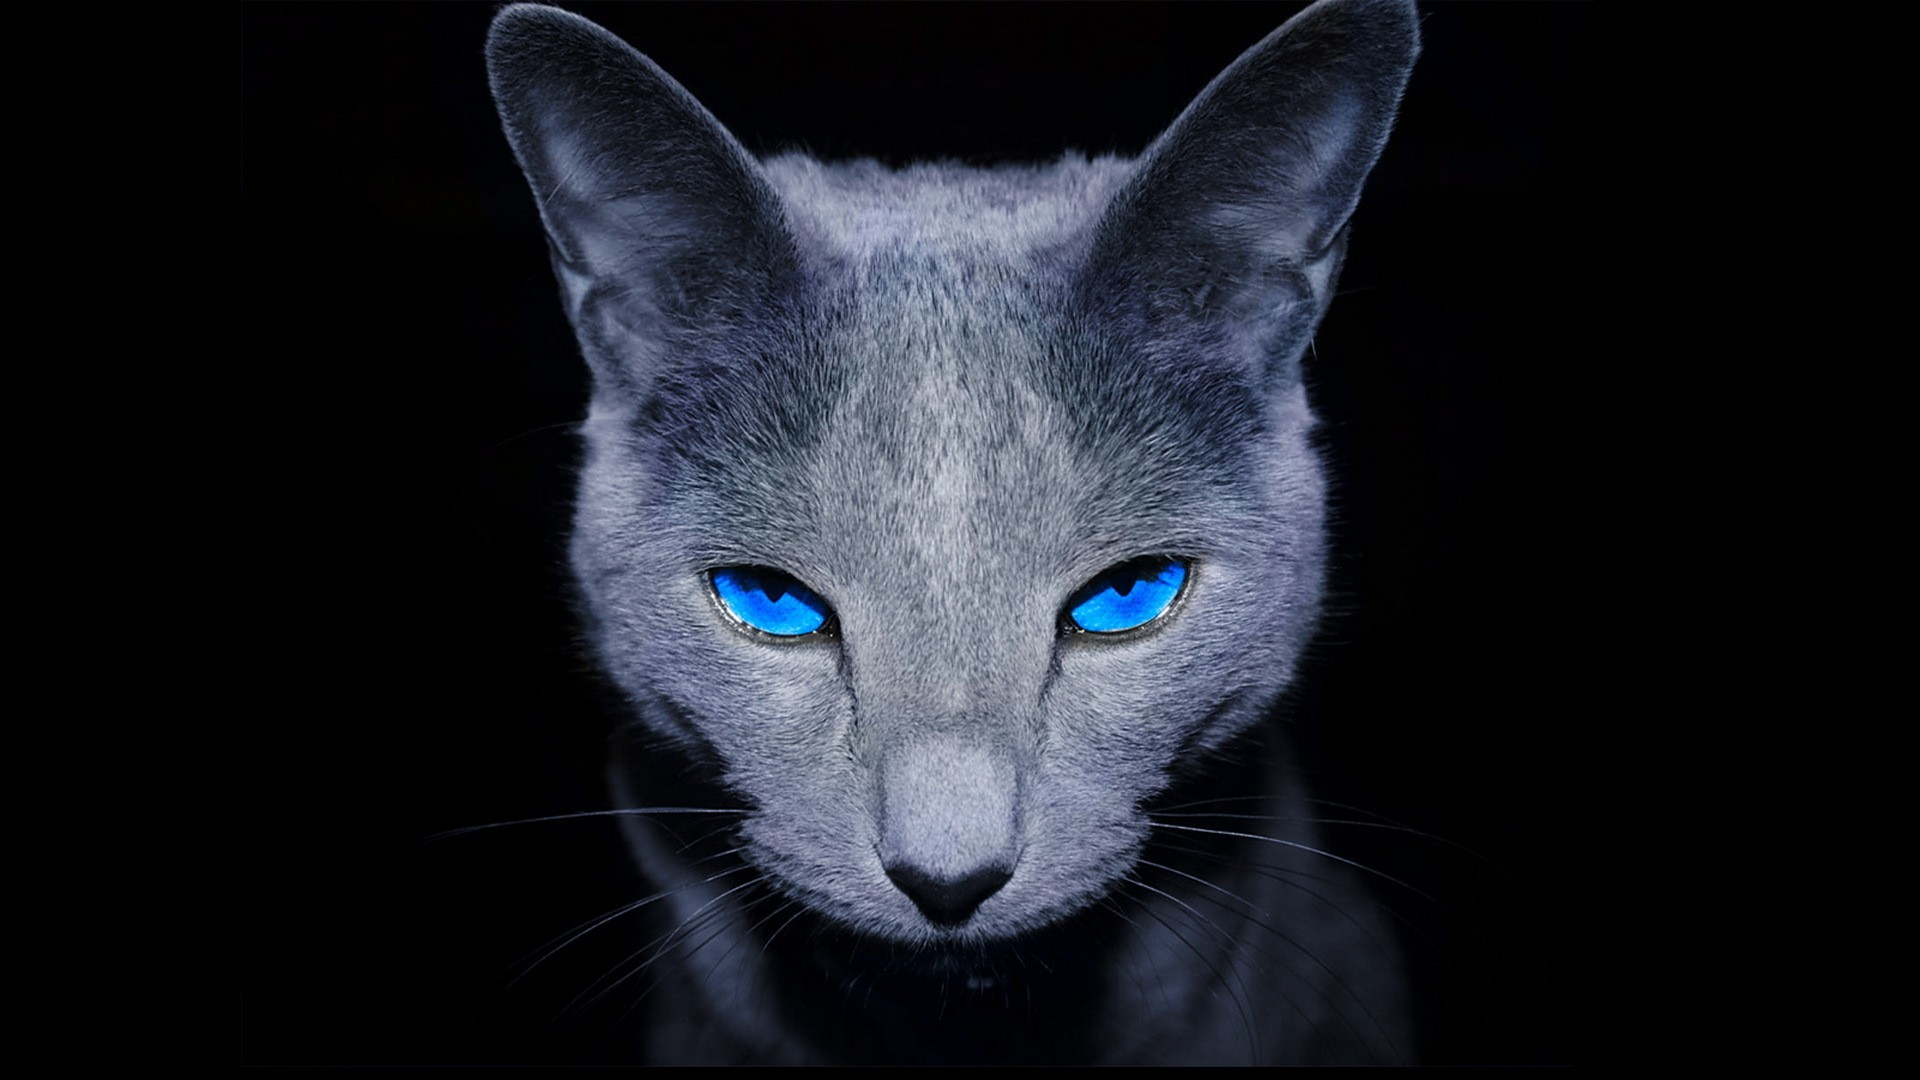 Image Black animal wallpaper with dark gray cat with blue eyes